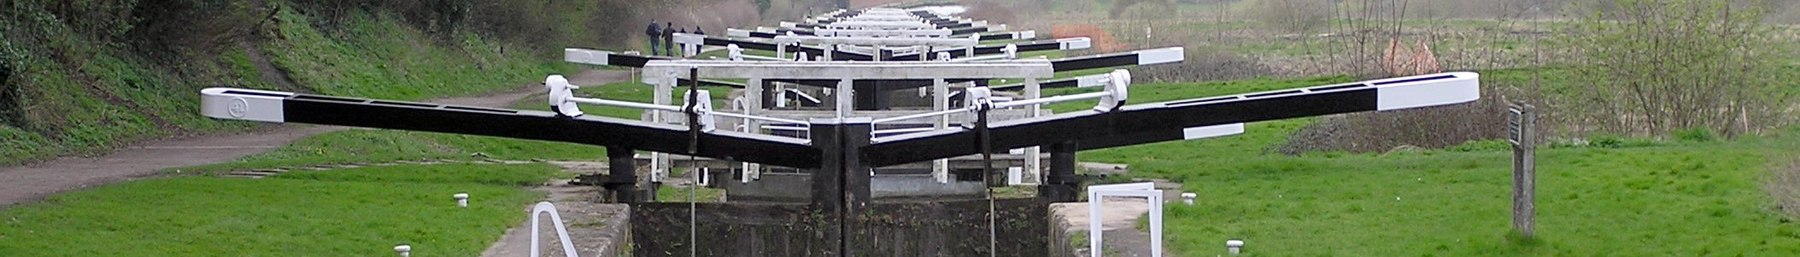 The Caen Hill locks, on the Kennet and Avon Canal